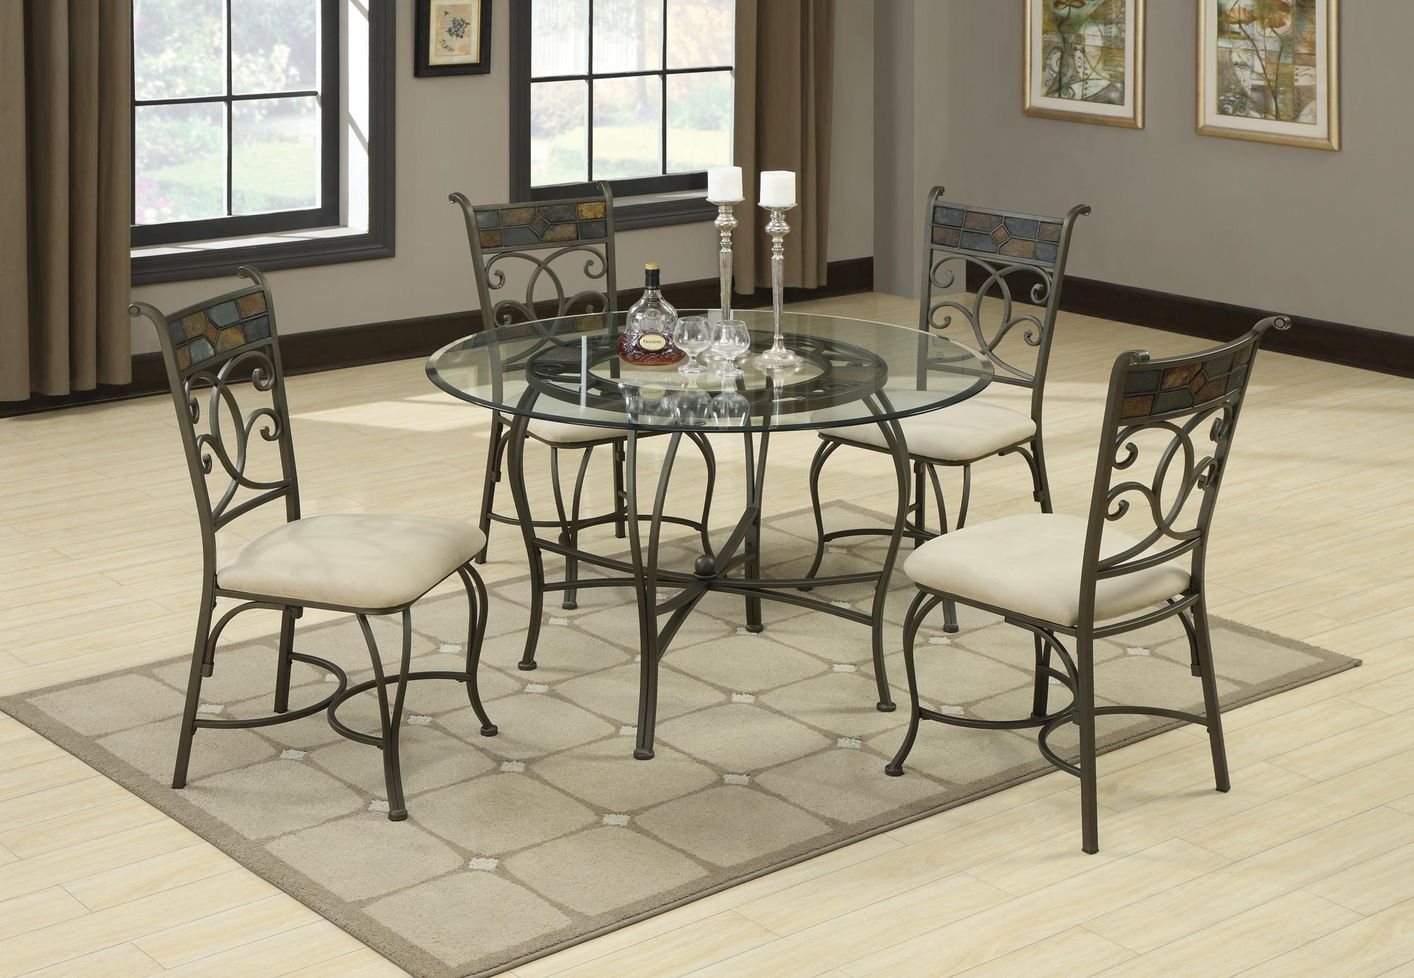 Sheridan grey metal and glass dining table set steal a for Glass dining room table set